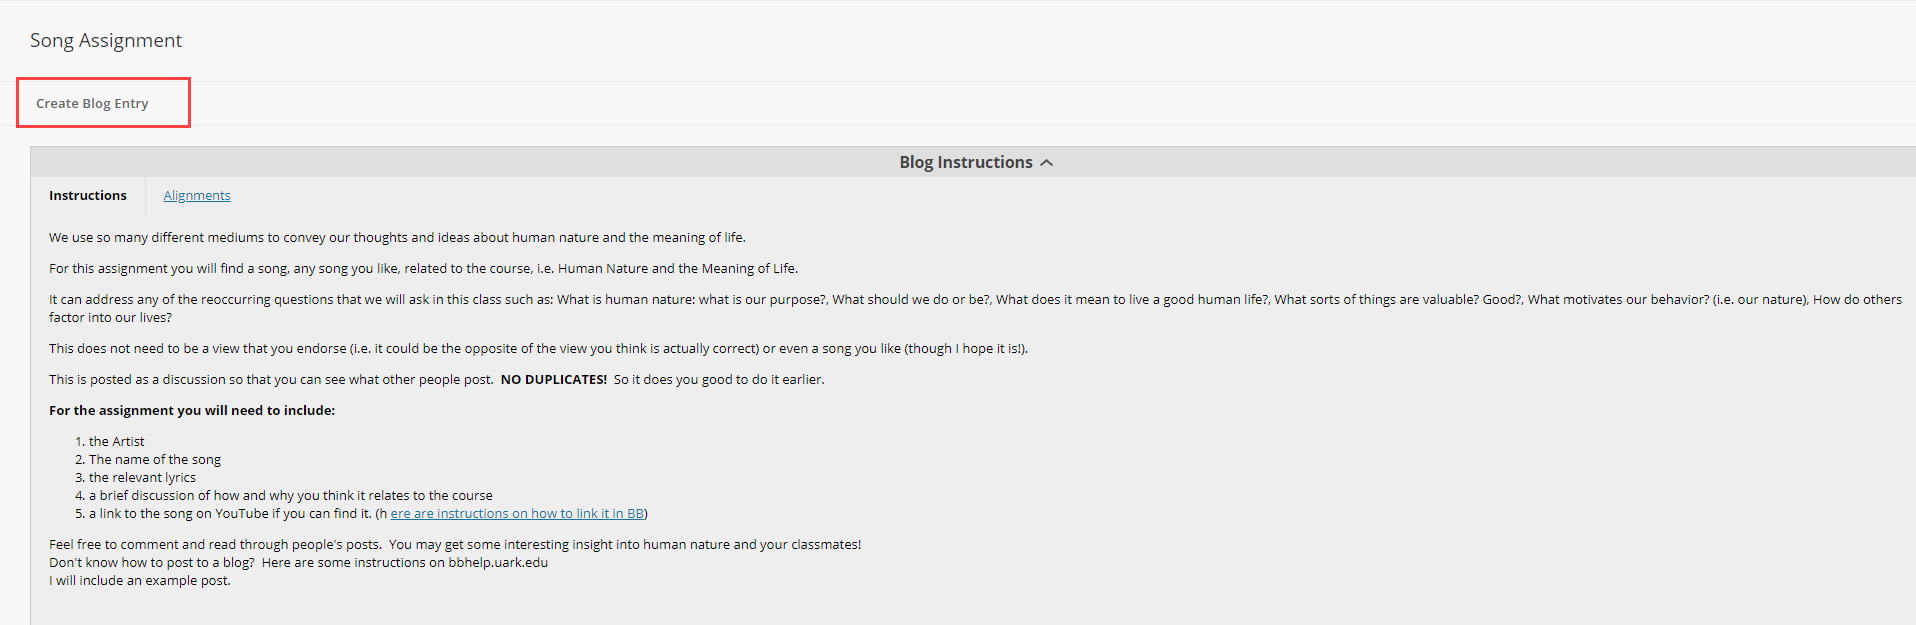 Post and Comment on a Blog | Blackboard Help for Students